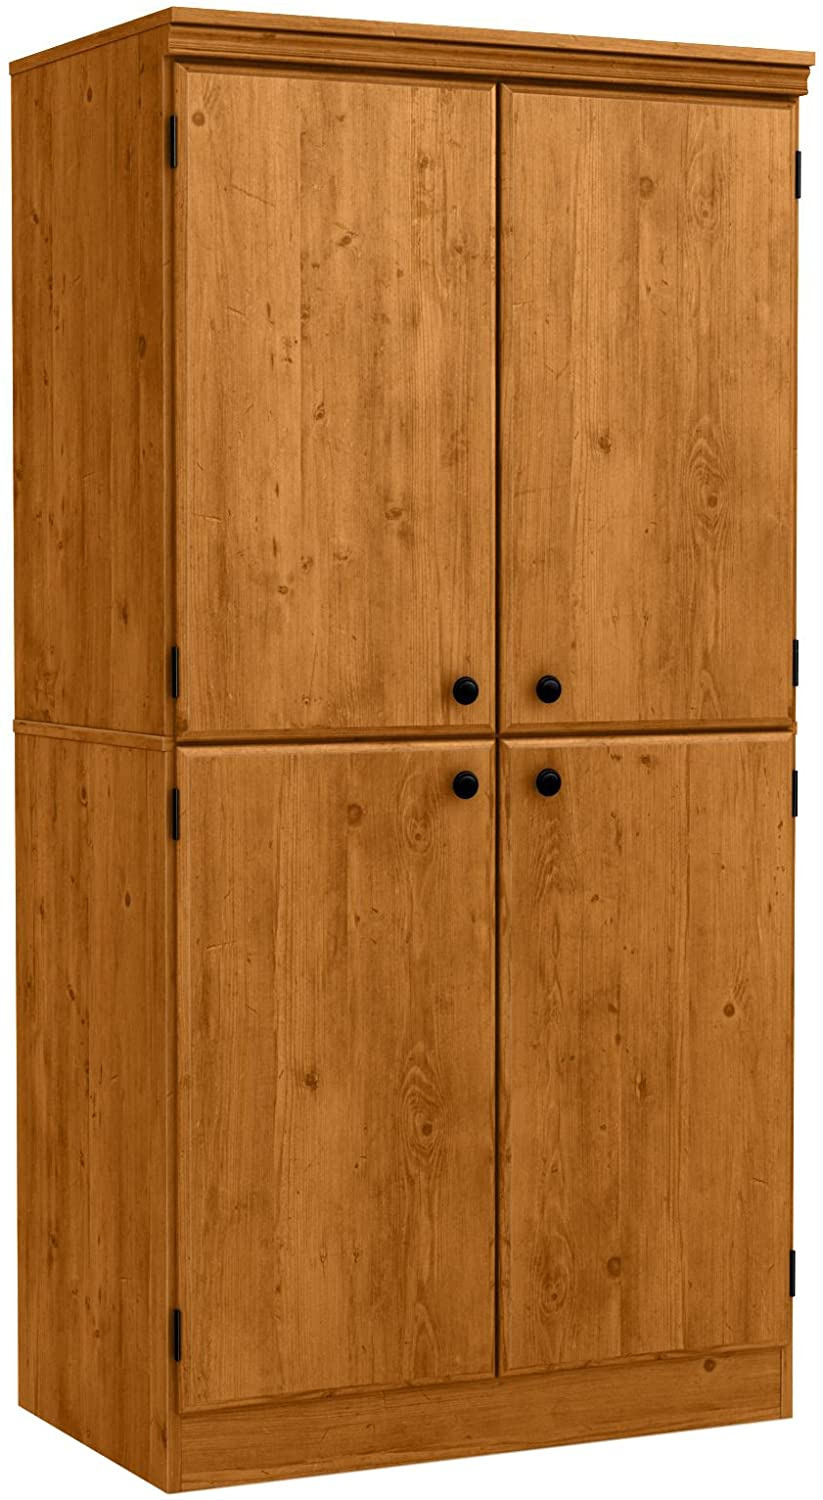 4 Door Storage Cabinet New south Shore Tall 4 Door Storage Cabinet with Adjustable Shelves Country Pine